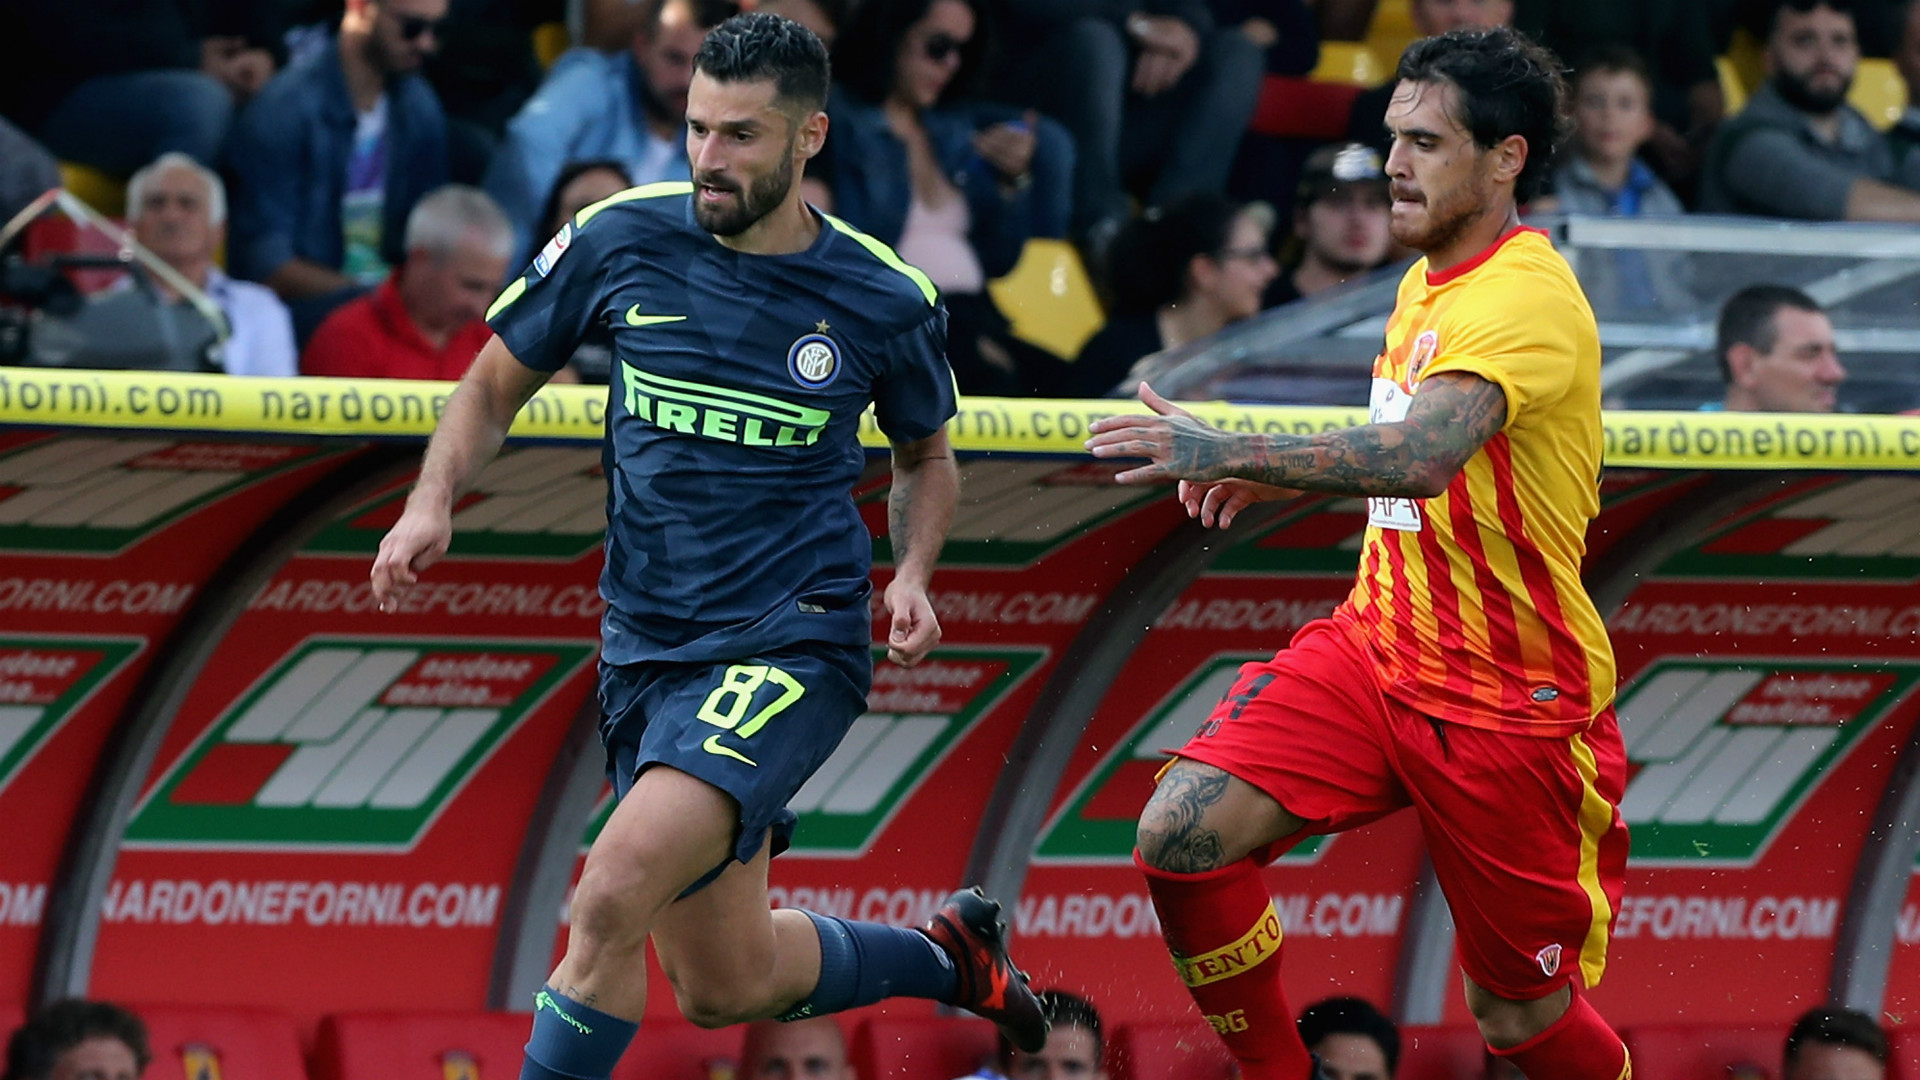 Candreva Viola Benevento Inter